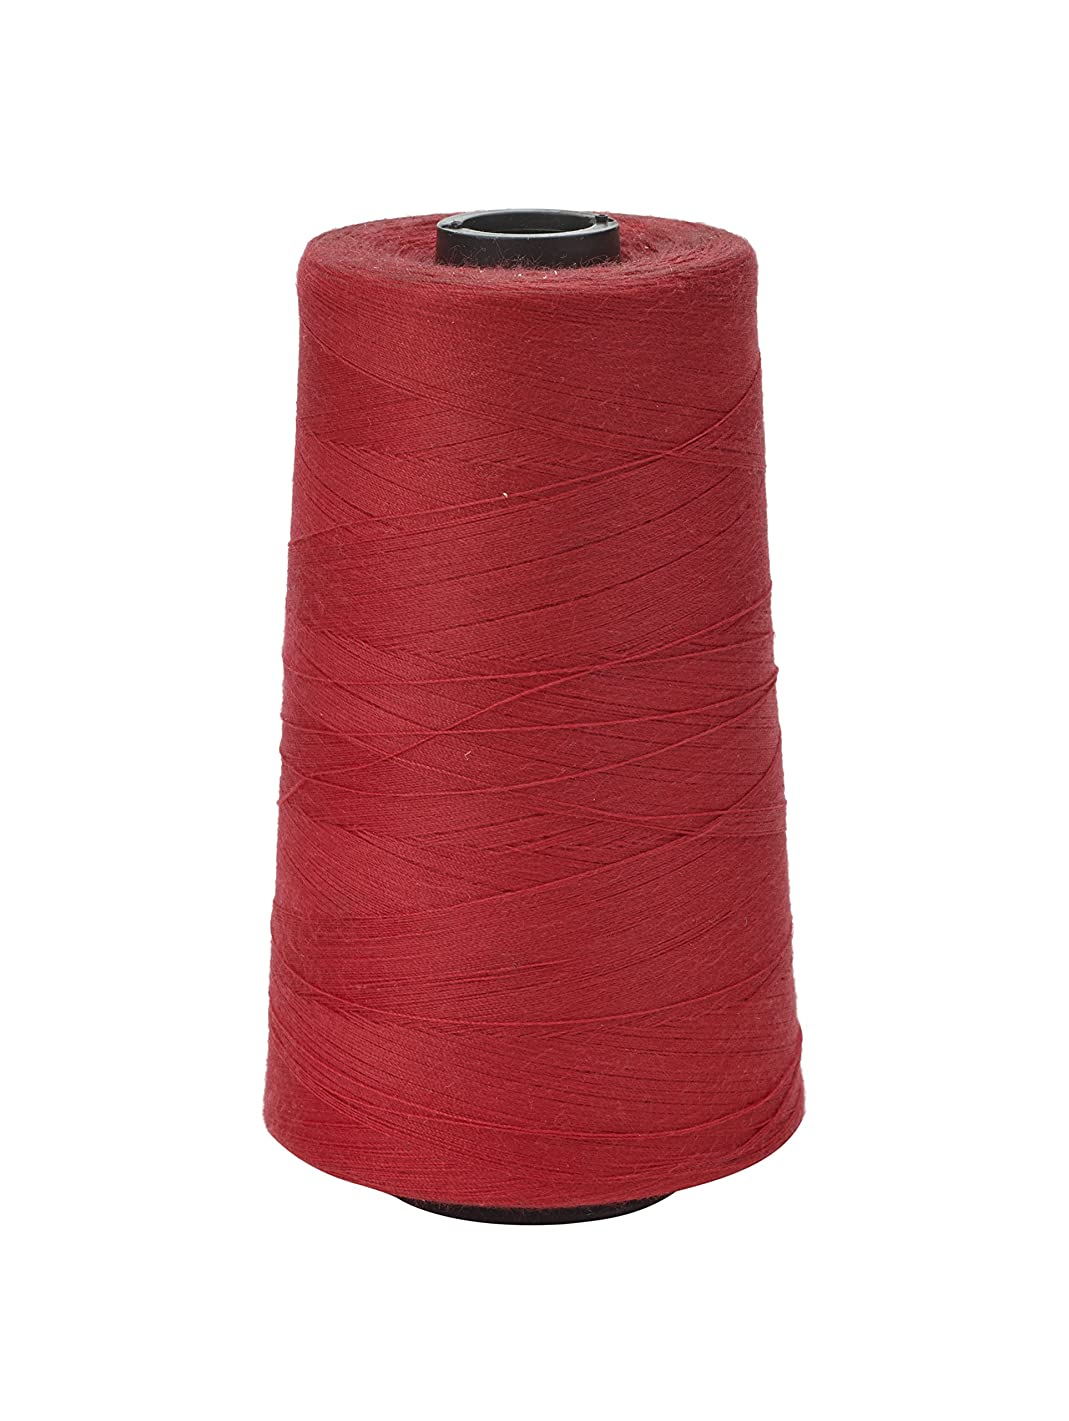 Pearl Matching Thread, 6000 yd Spools, Red